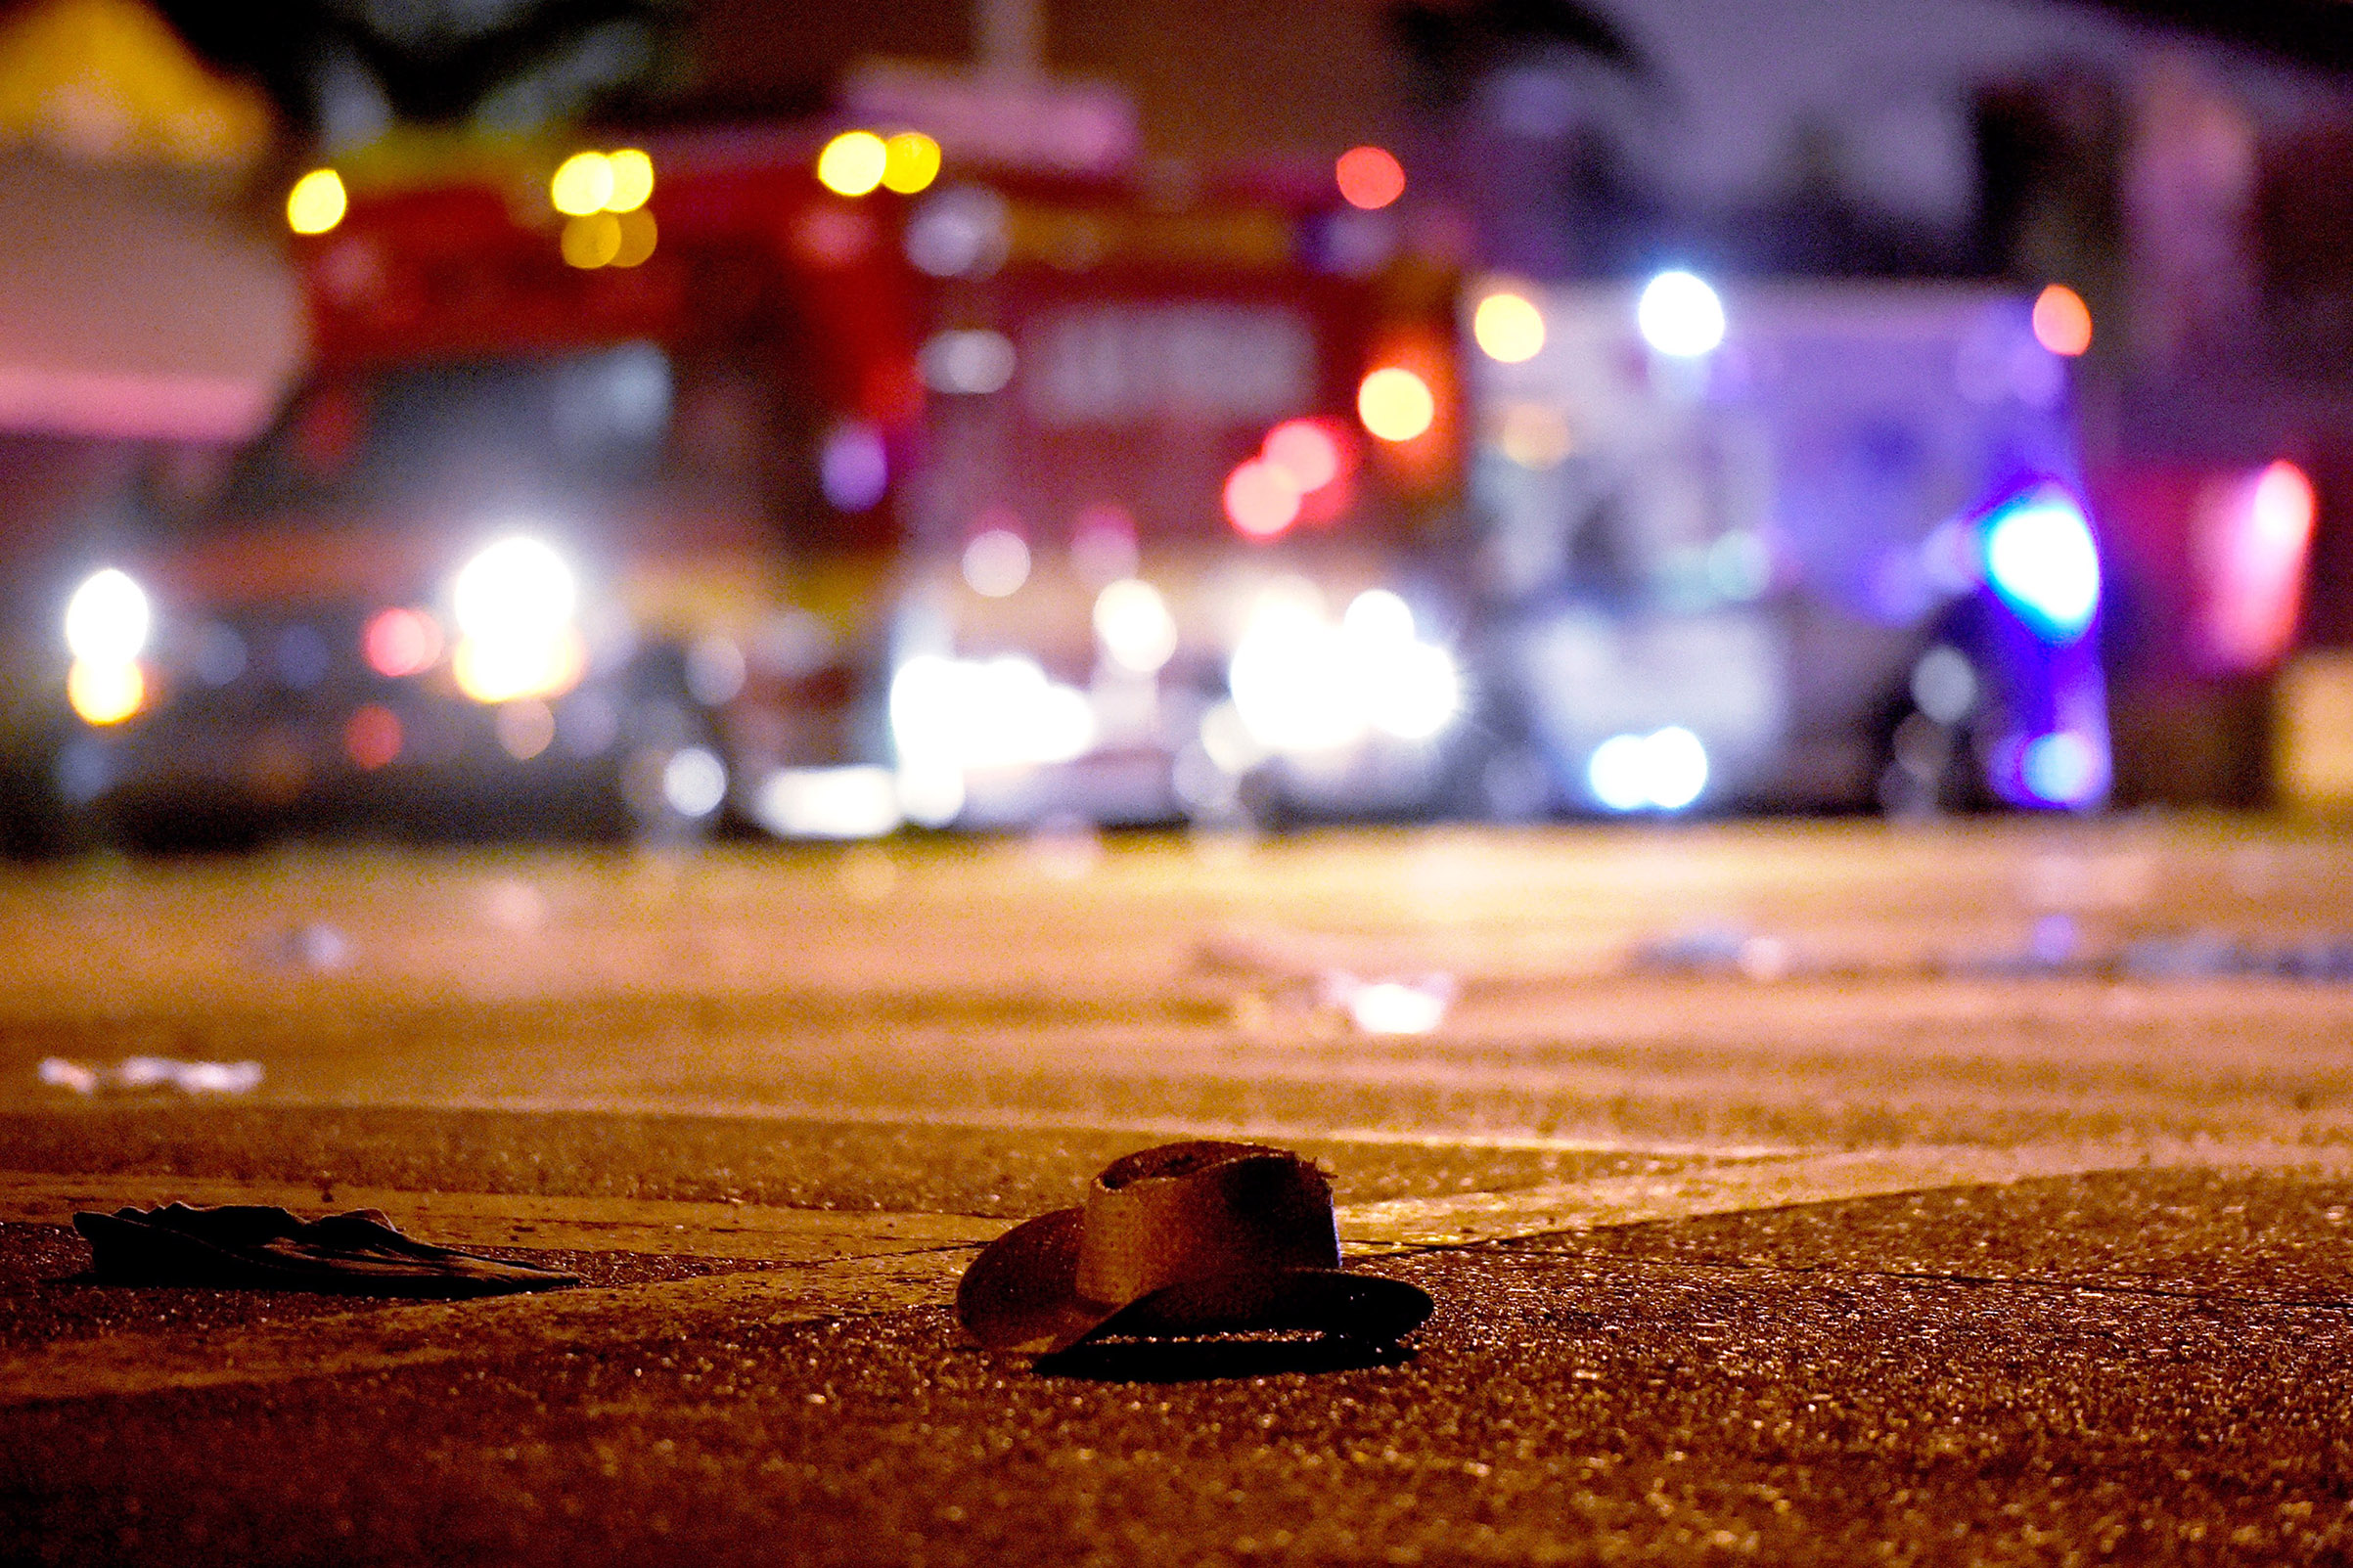 A cowboy hat lays in the street after shots were fired at the Route 91 Harvest country music festival after a shooting, Oct. 1, 2017 in Las Vegas.